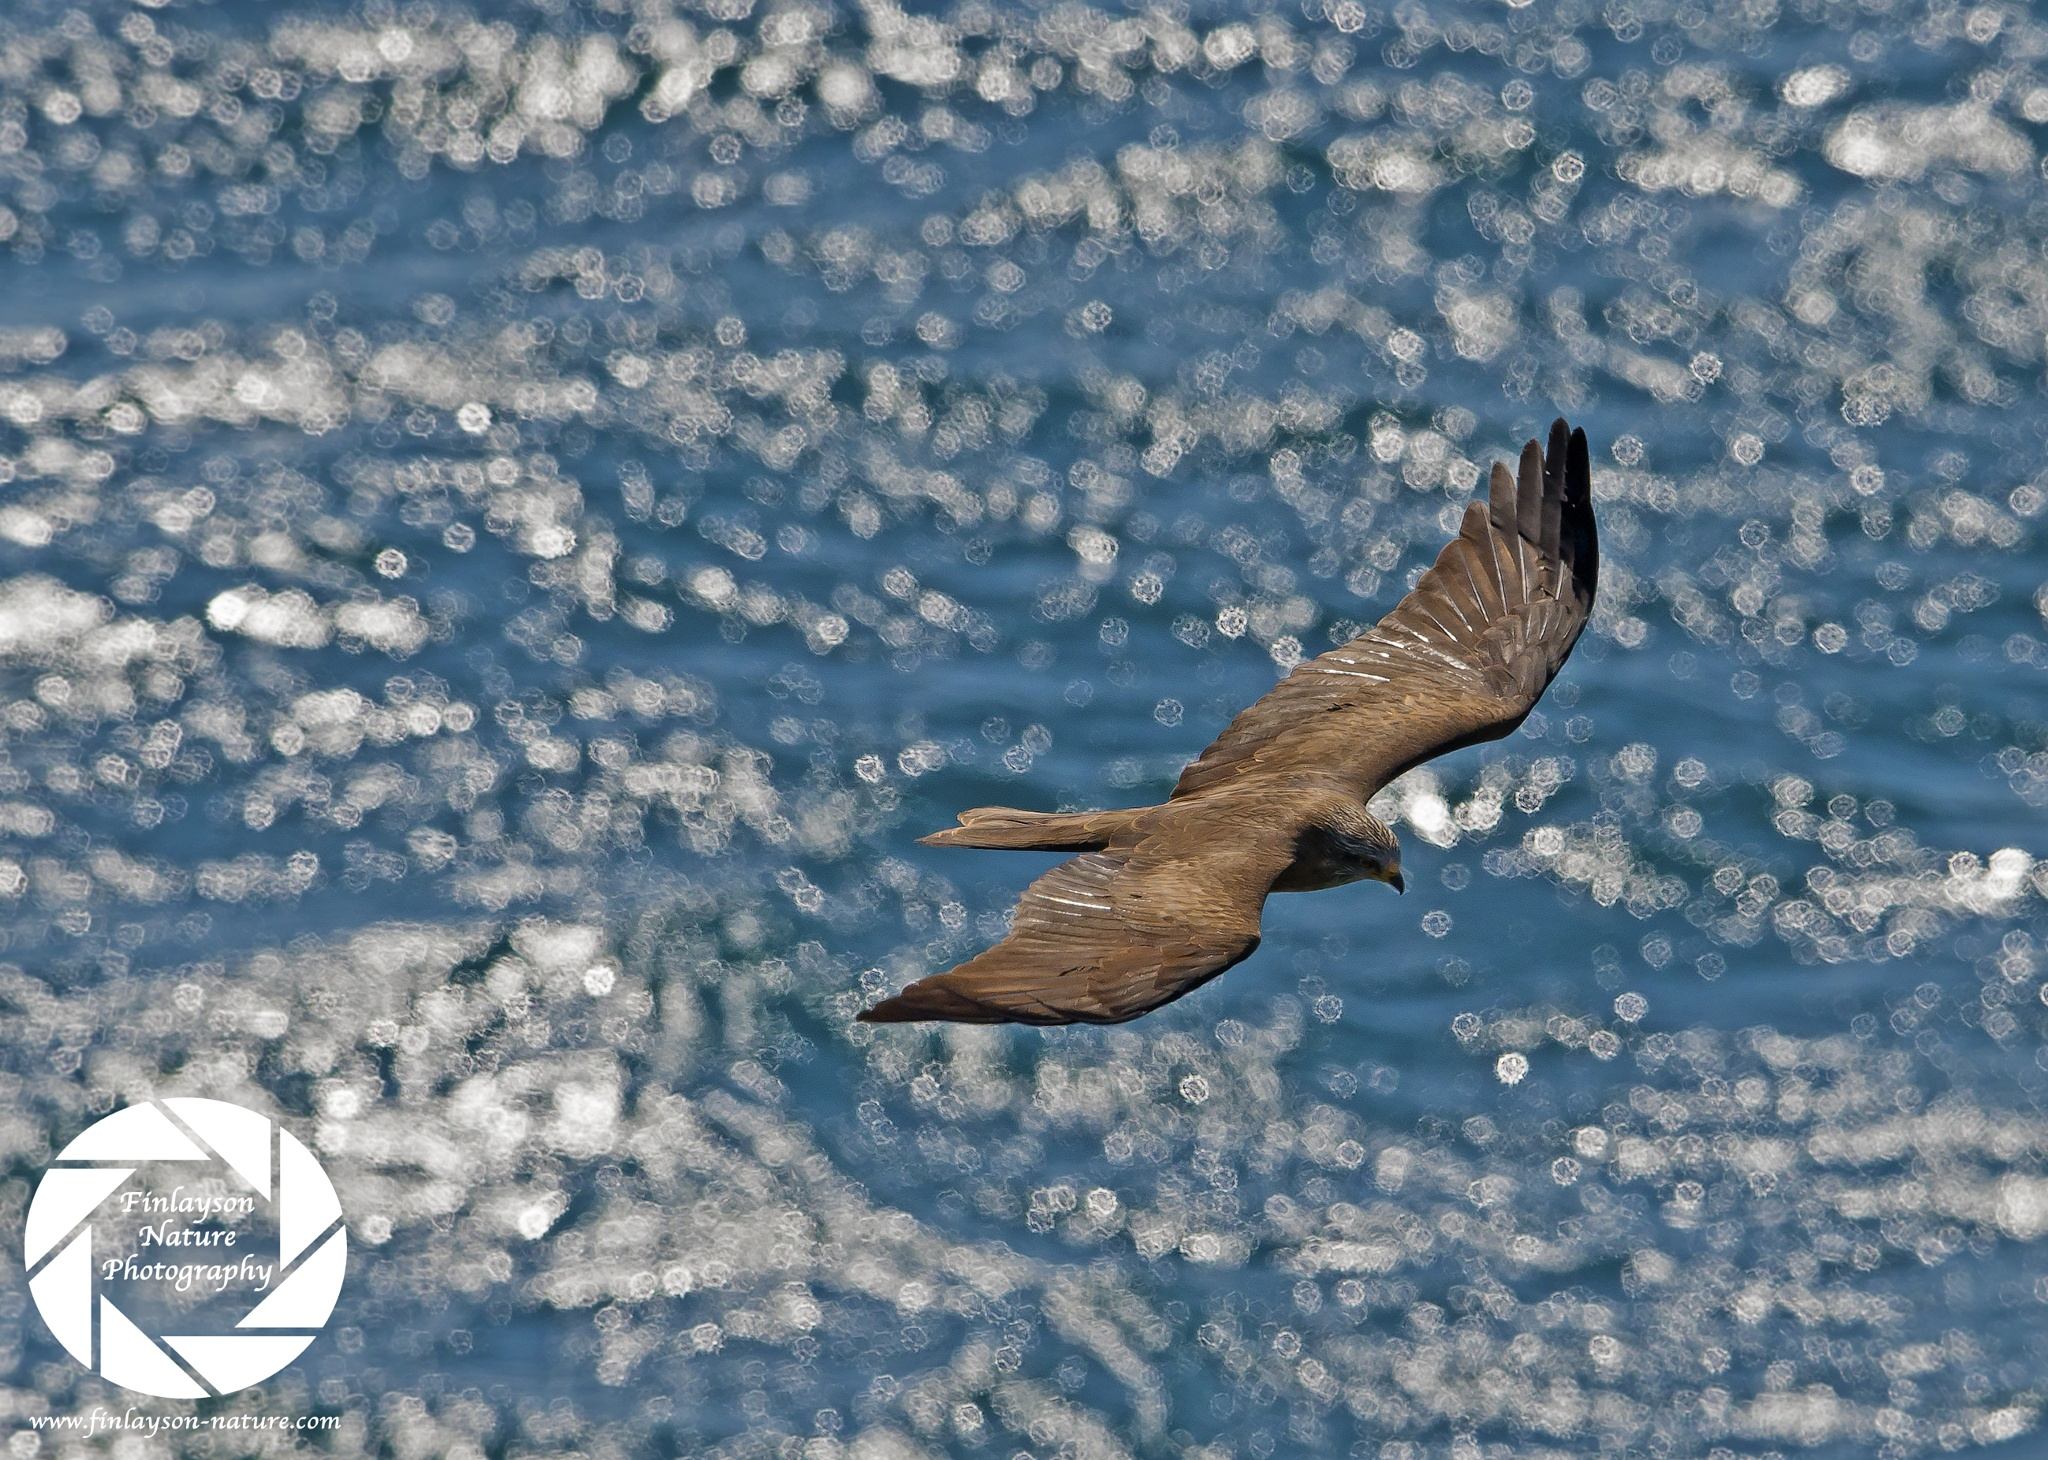 Bird Migration in action: Black Kite struggling over the waves by Clive Finlayson